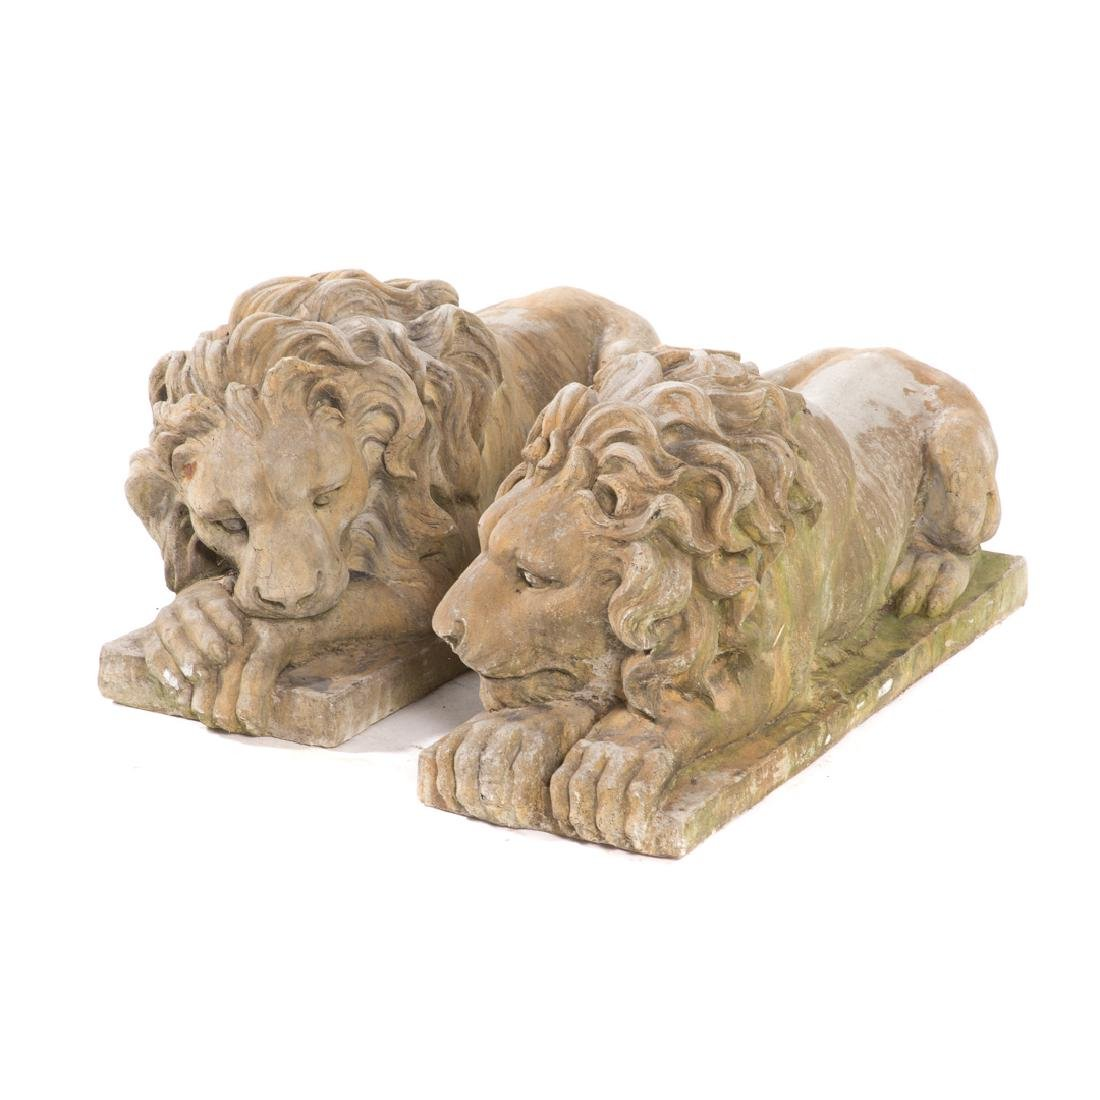 Pair of poured stone lions - 2